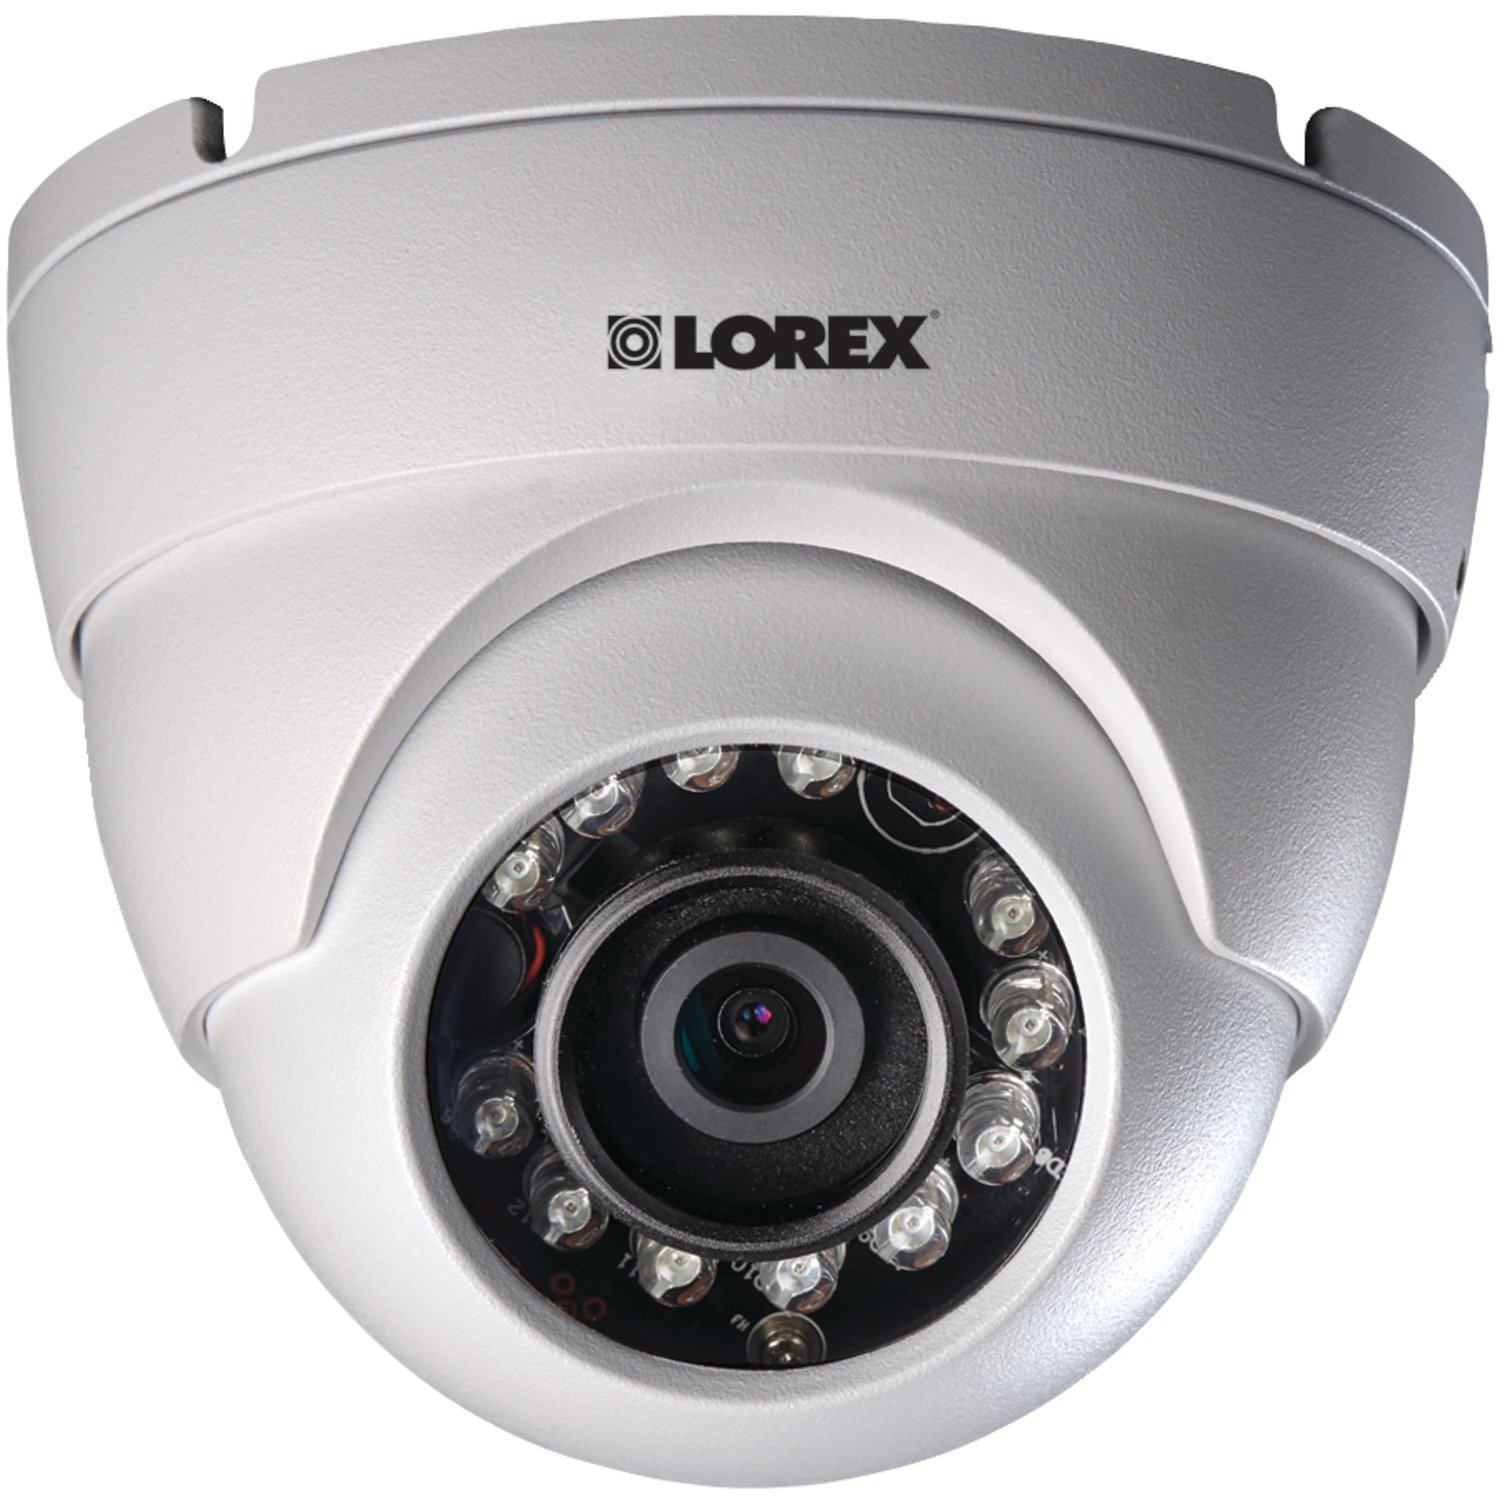 Lorex LNE3142RB Lne3142b 1080p Hd Ip Eyeball Dome Camera For Lnr100 & Lnr400 Series Nvrs